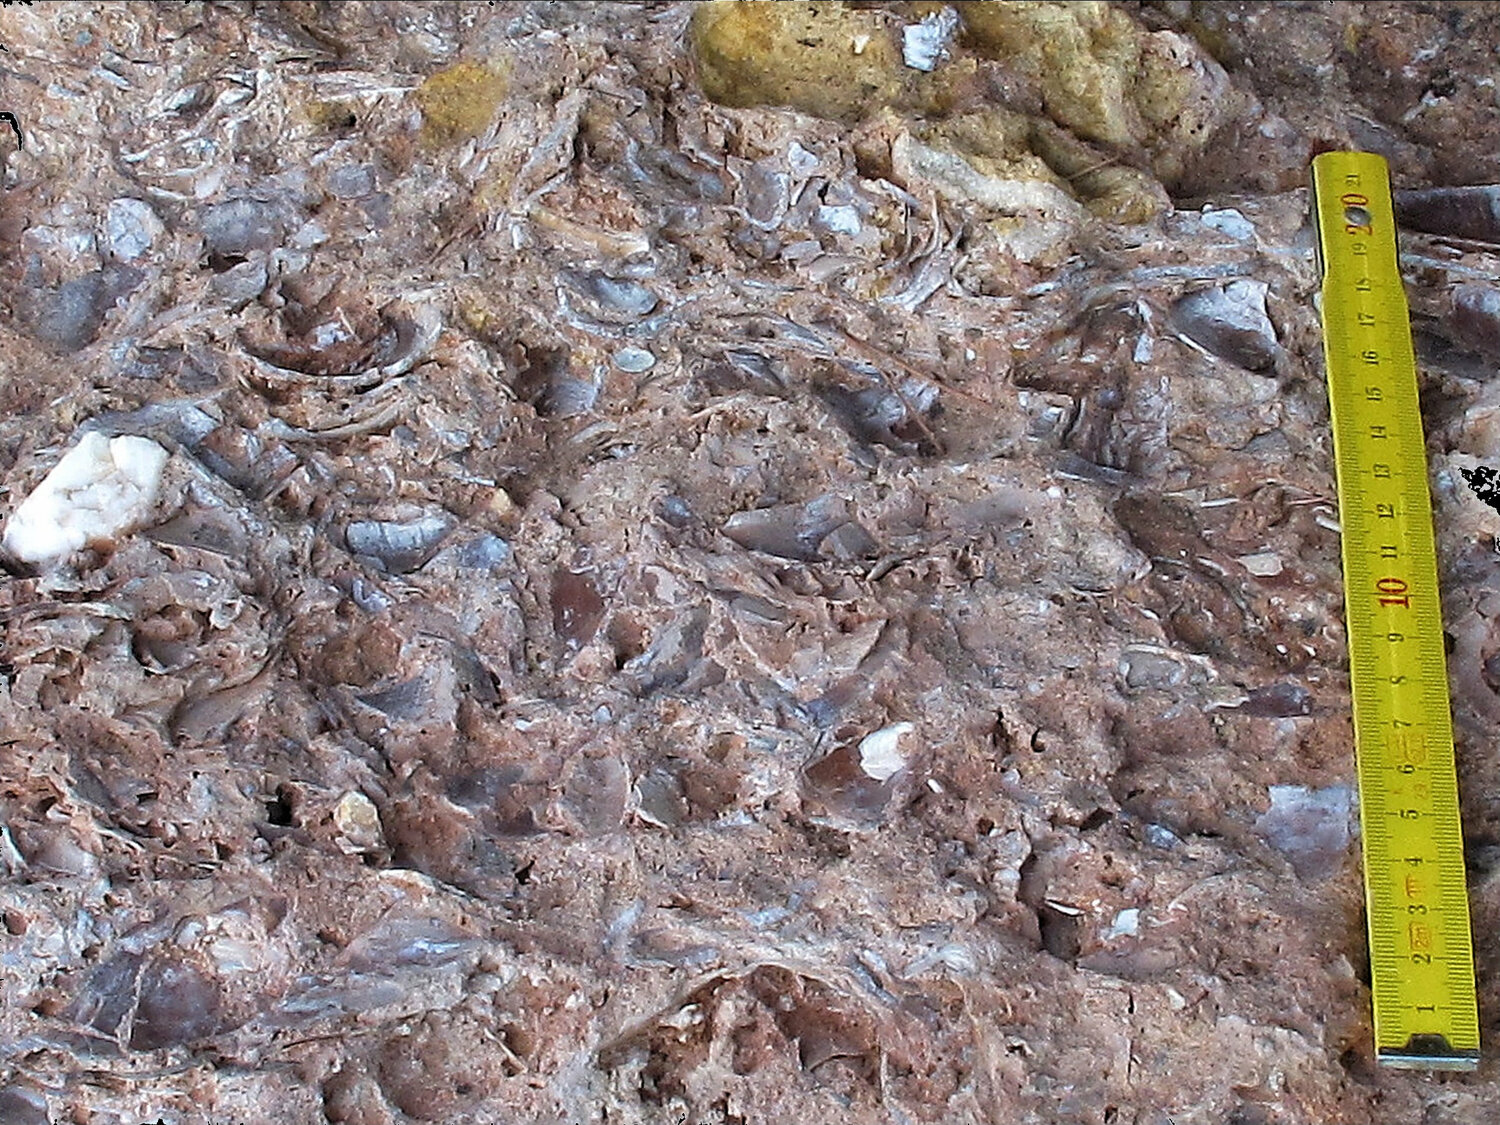 Horizontal view of a mussel shell bed.